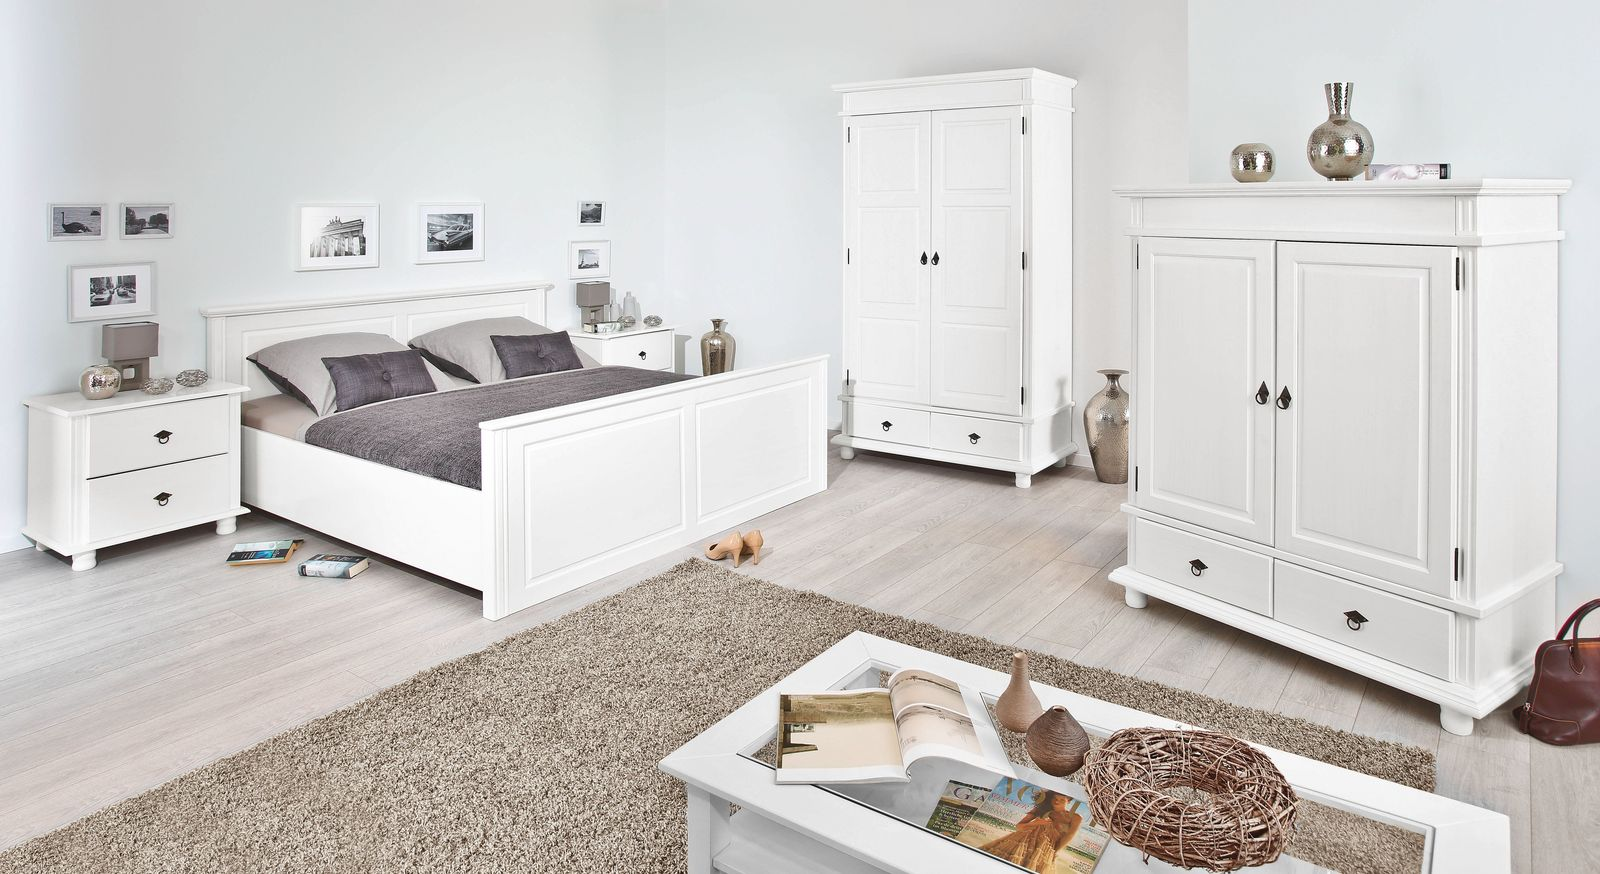 schlafzimmer komplett im landhausstil aus wei er kiefer wien. Black Bedroom Furniture Sets. Home Design Ideas